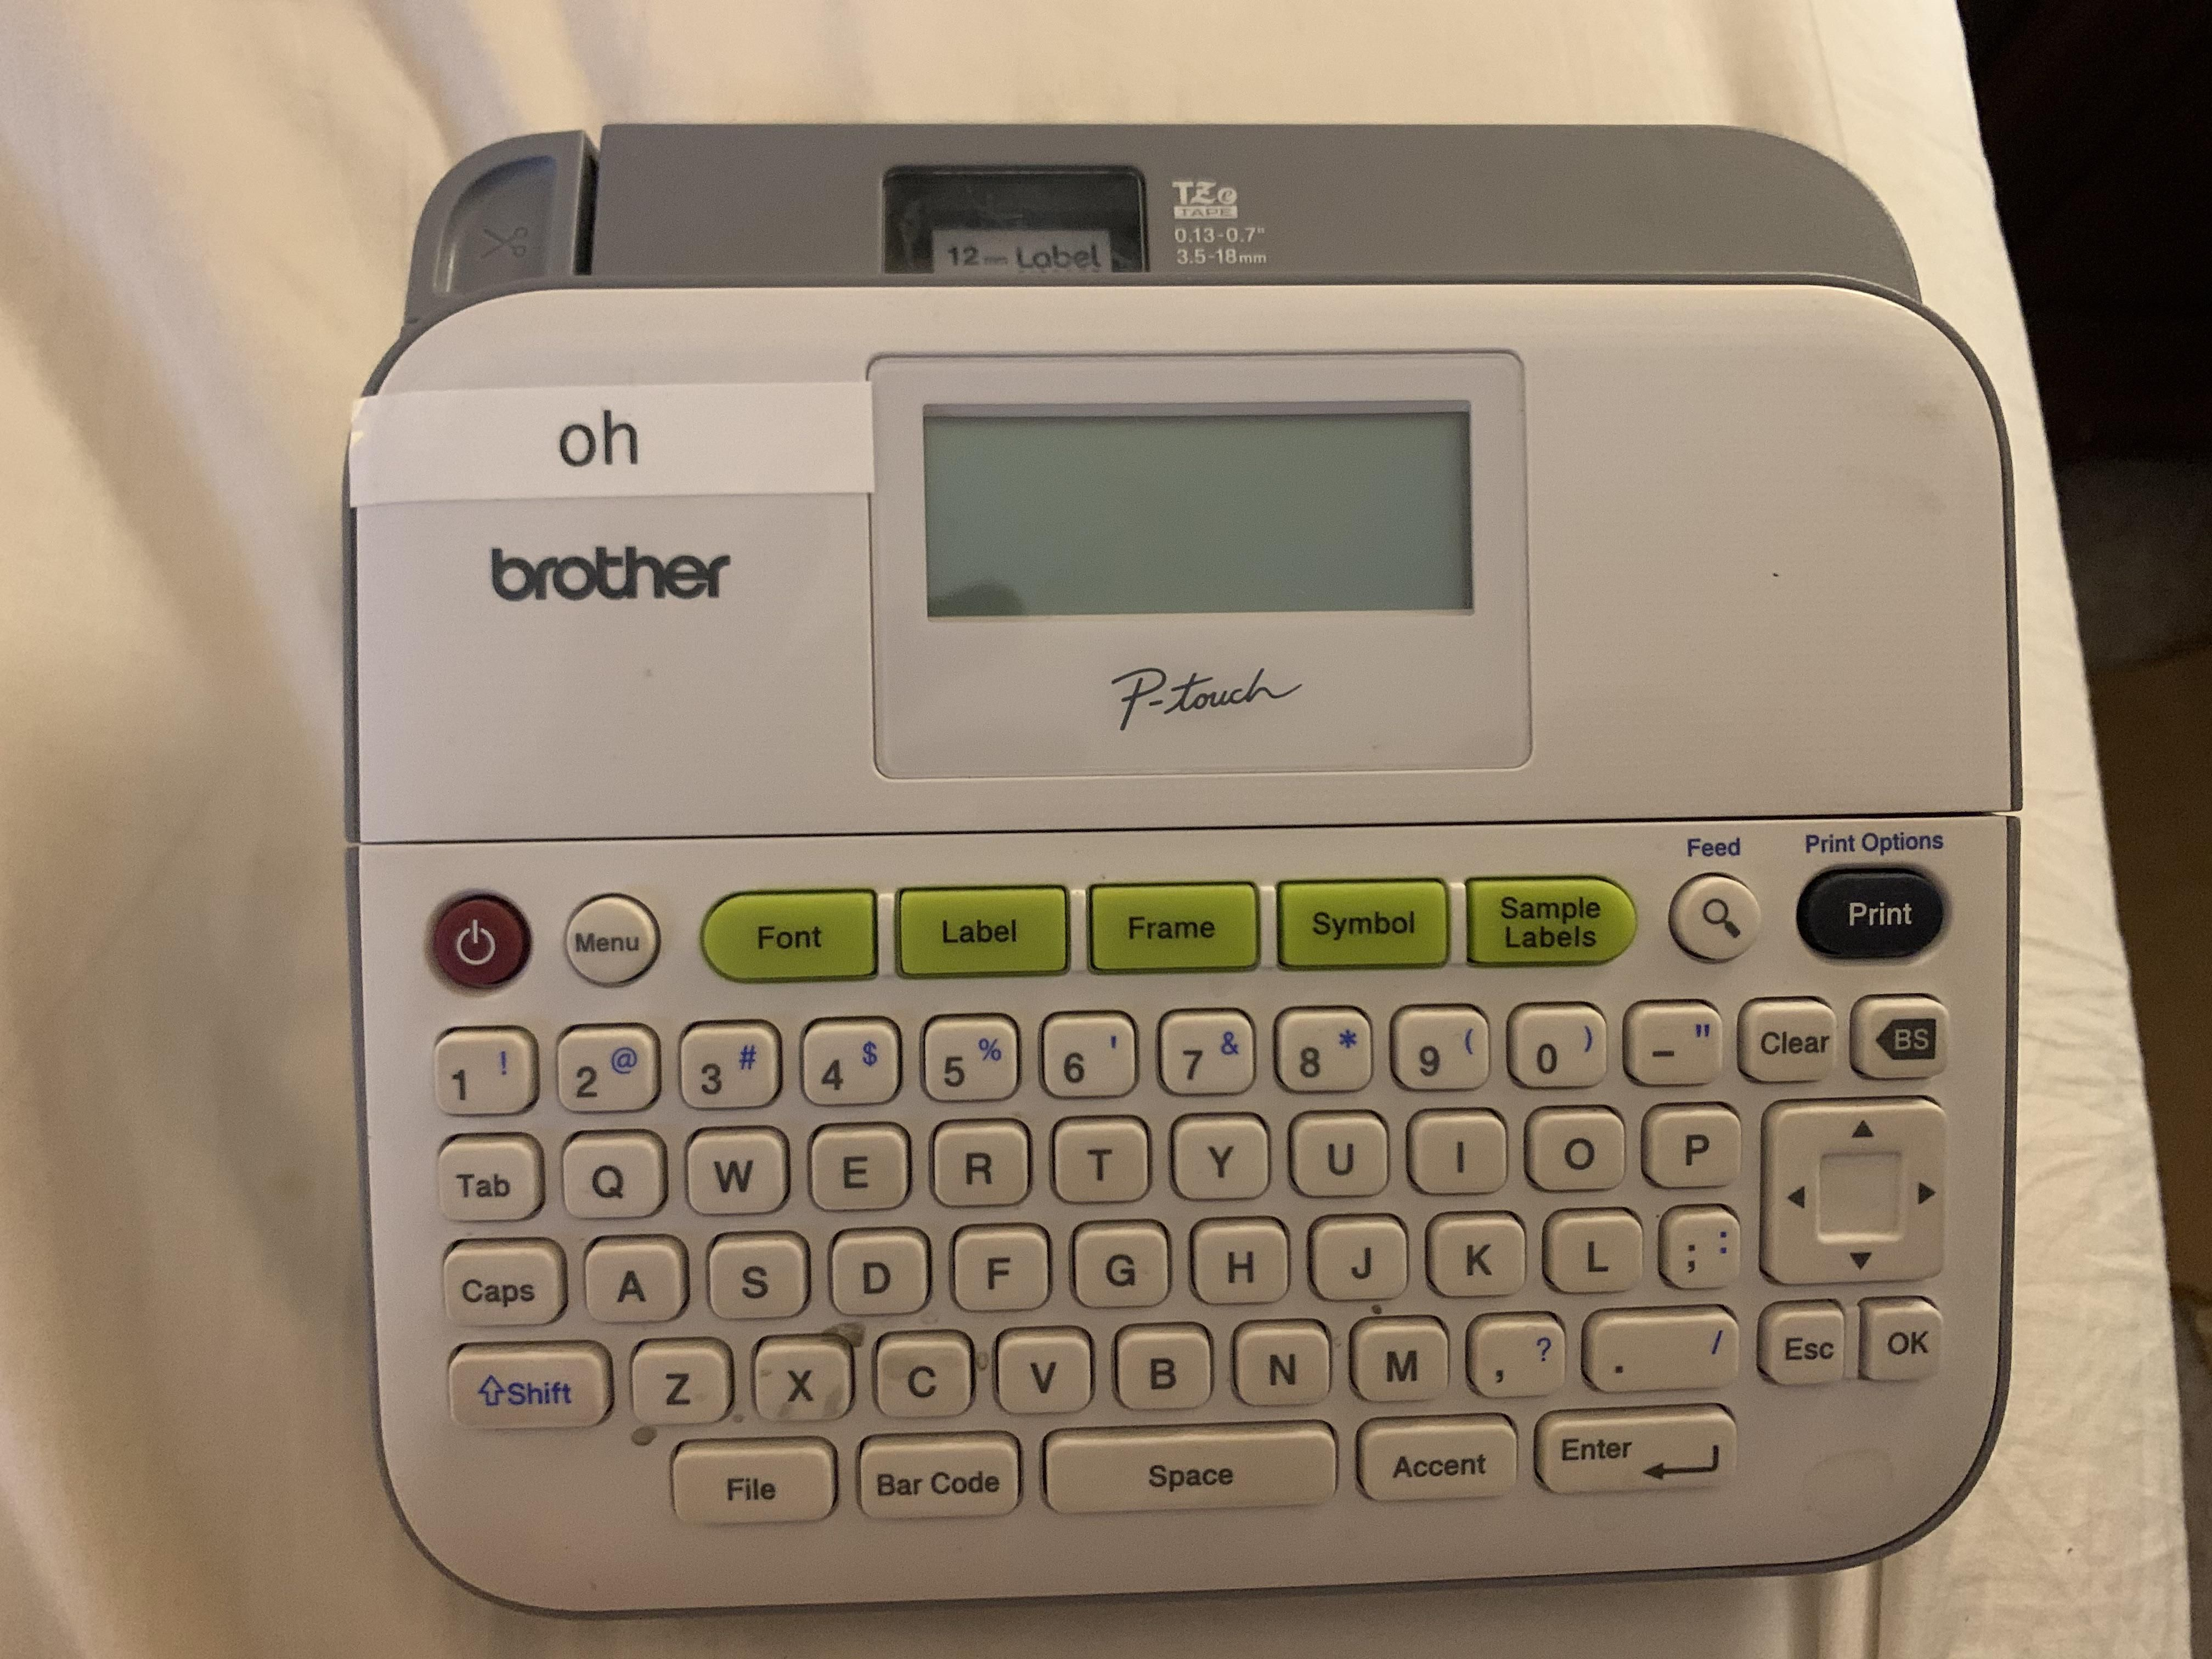 Apparently my kids got ahold of my label maker